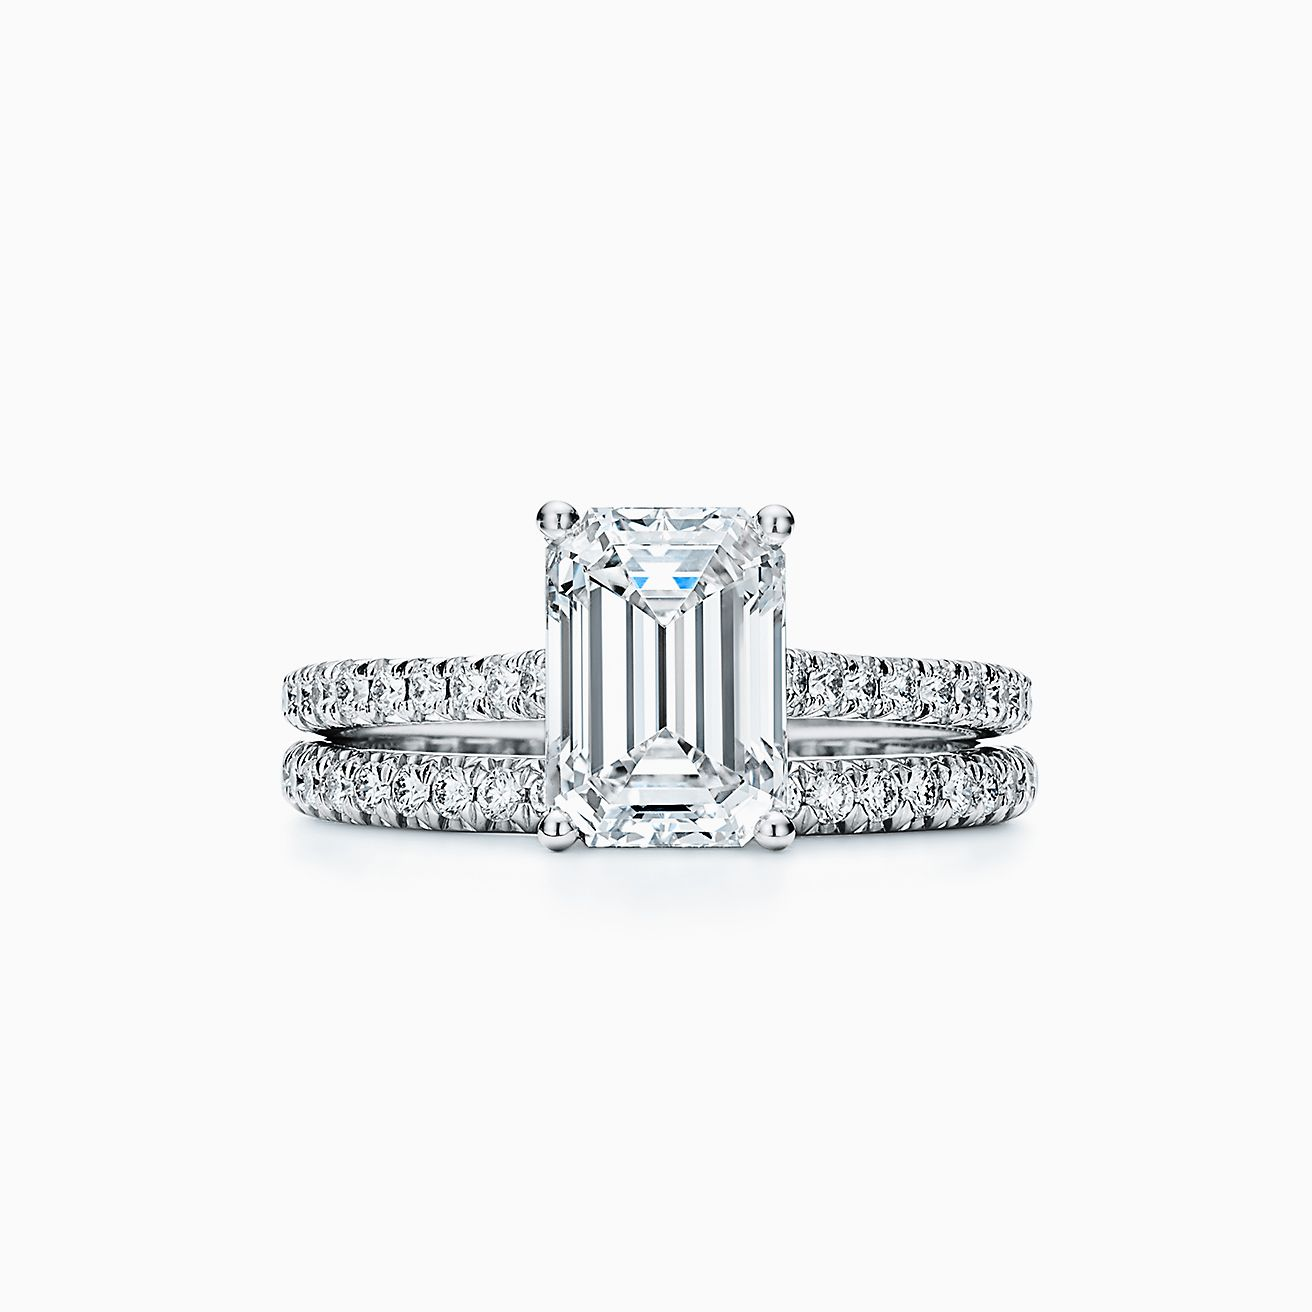 Tiffany Novo Emerald Cut Engagement Ring With A Pave Diamond Platinum Band